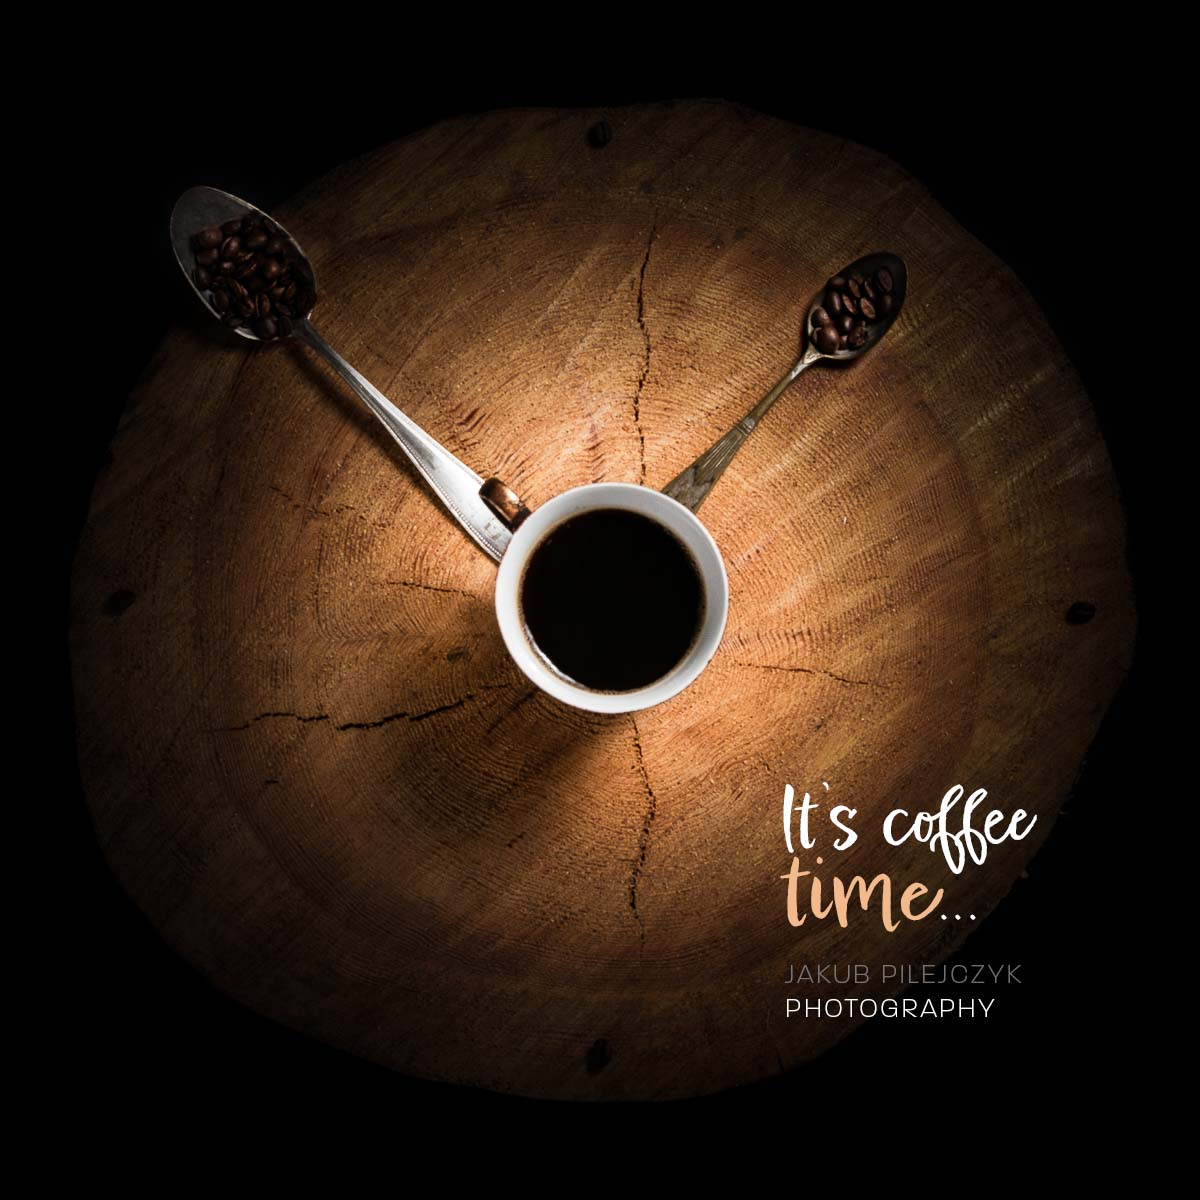 It's coffee time...